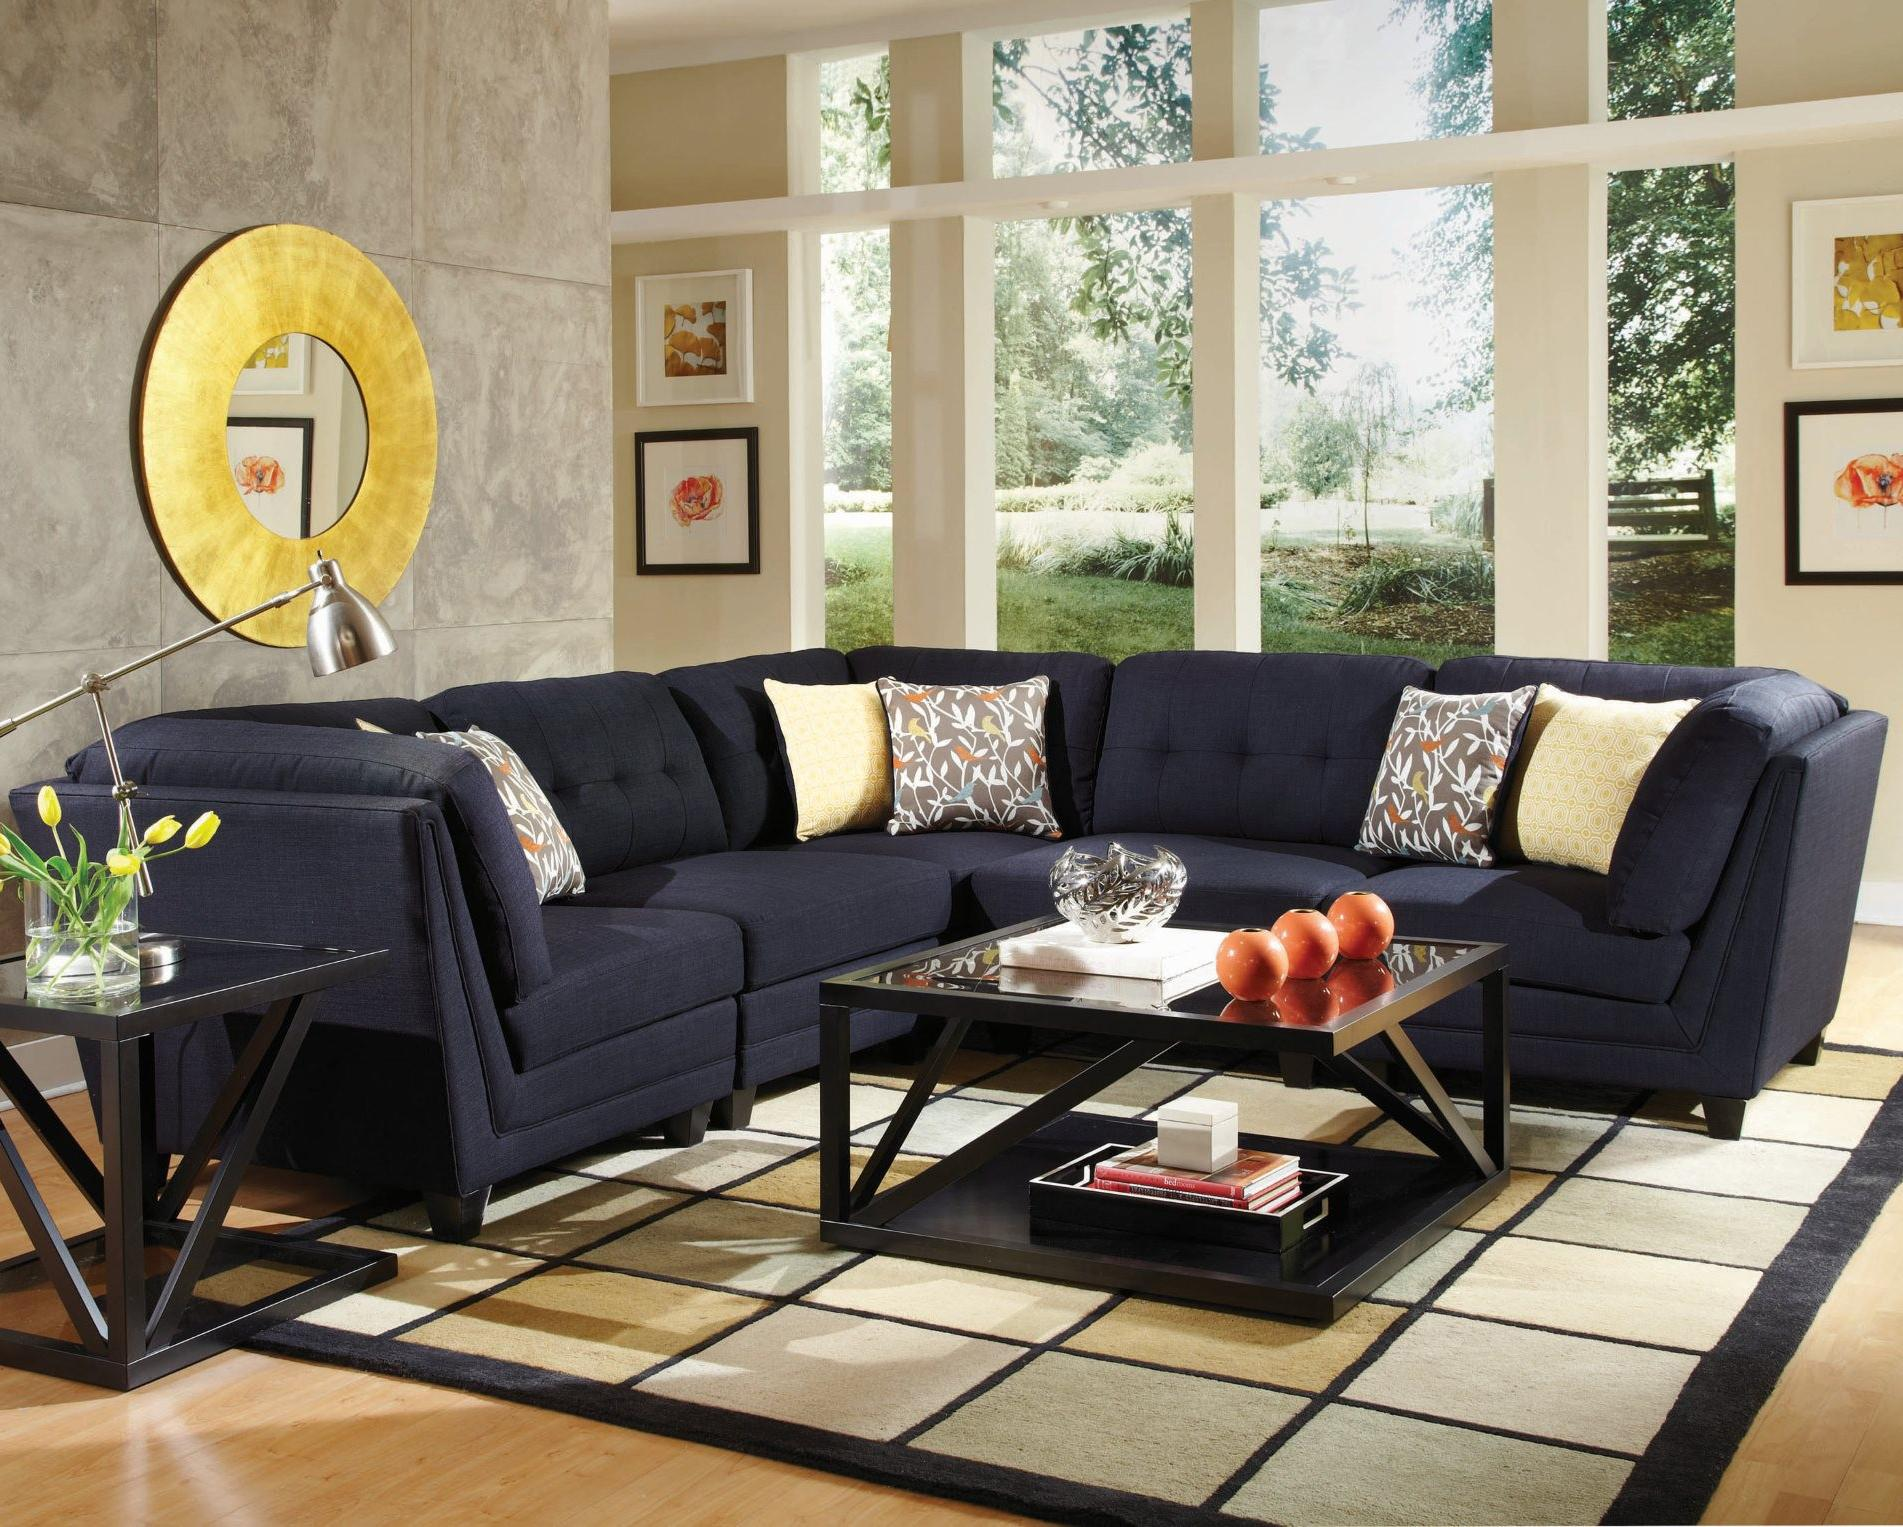 Blue Sectional Keaton Transitional Five Piece Sectional Sofa With Tufting By Coaster At Value City Furniture